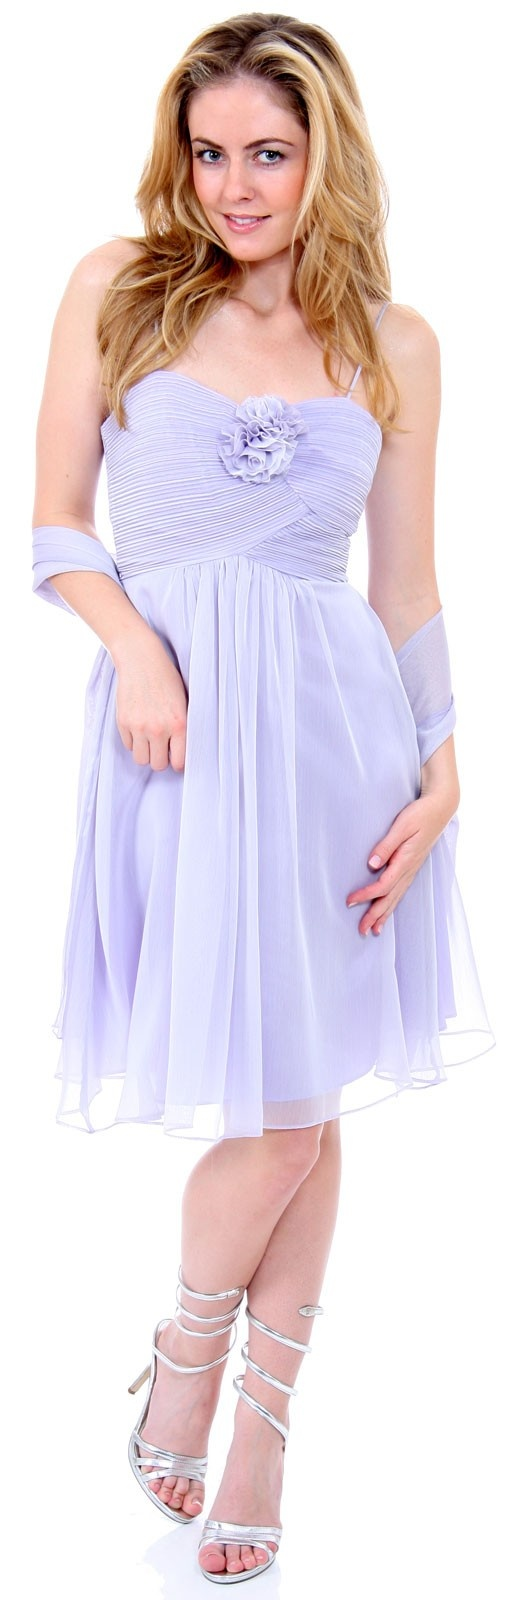 28 best bridesmaid dresses images on pinterest bridesmaids short lilac bridesmaids prom evening dress with spaghetti straps style 11279 7299 free uk delivery ombrellifo Images